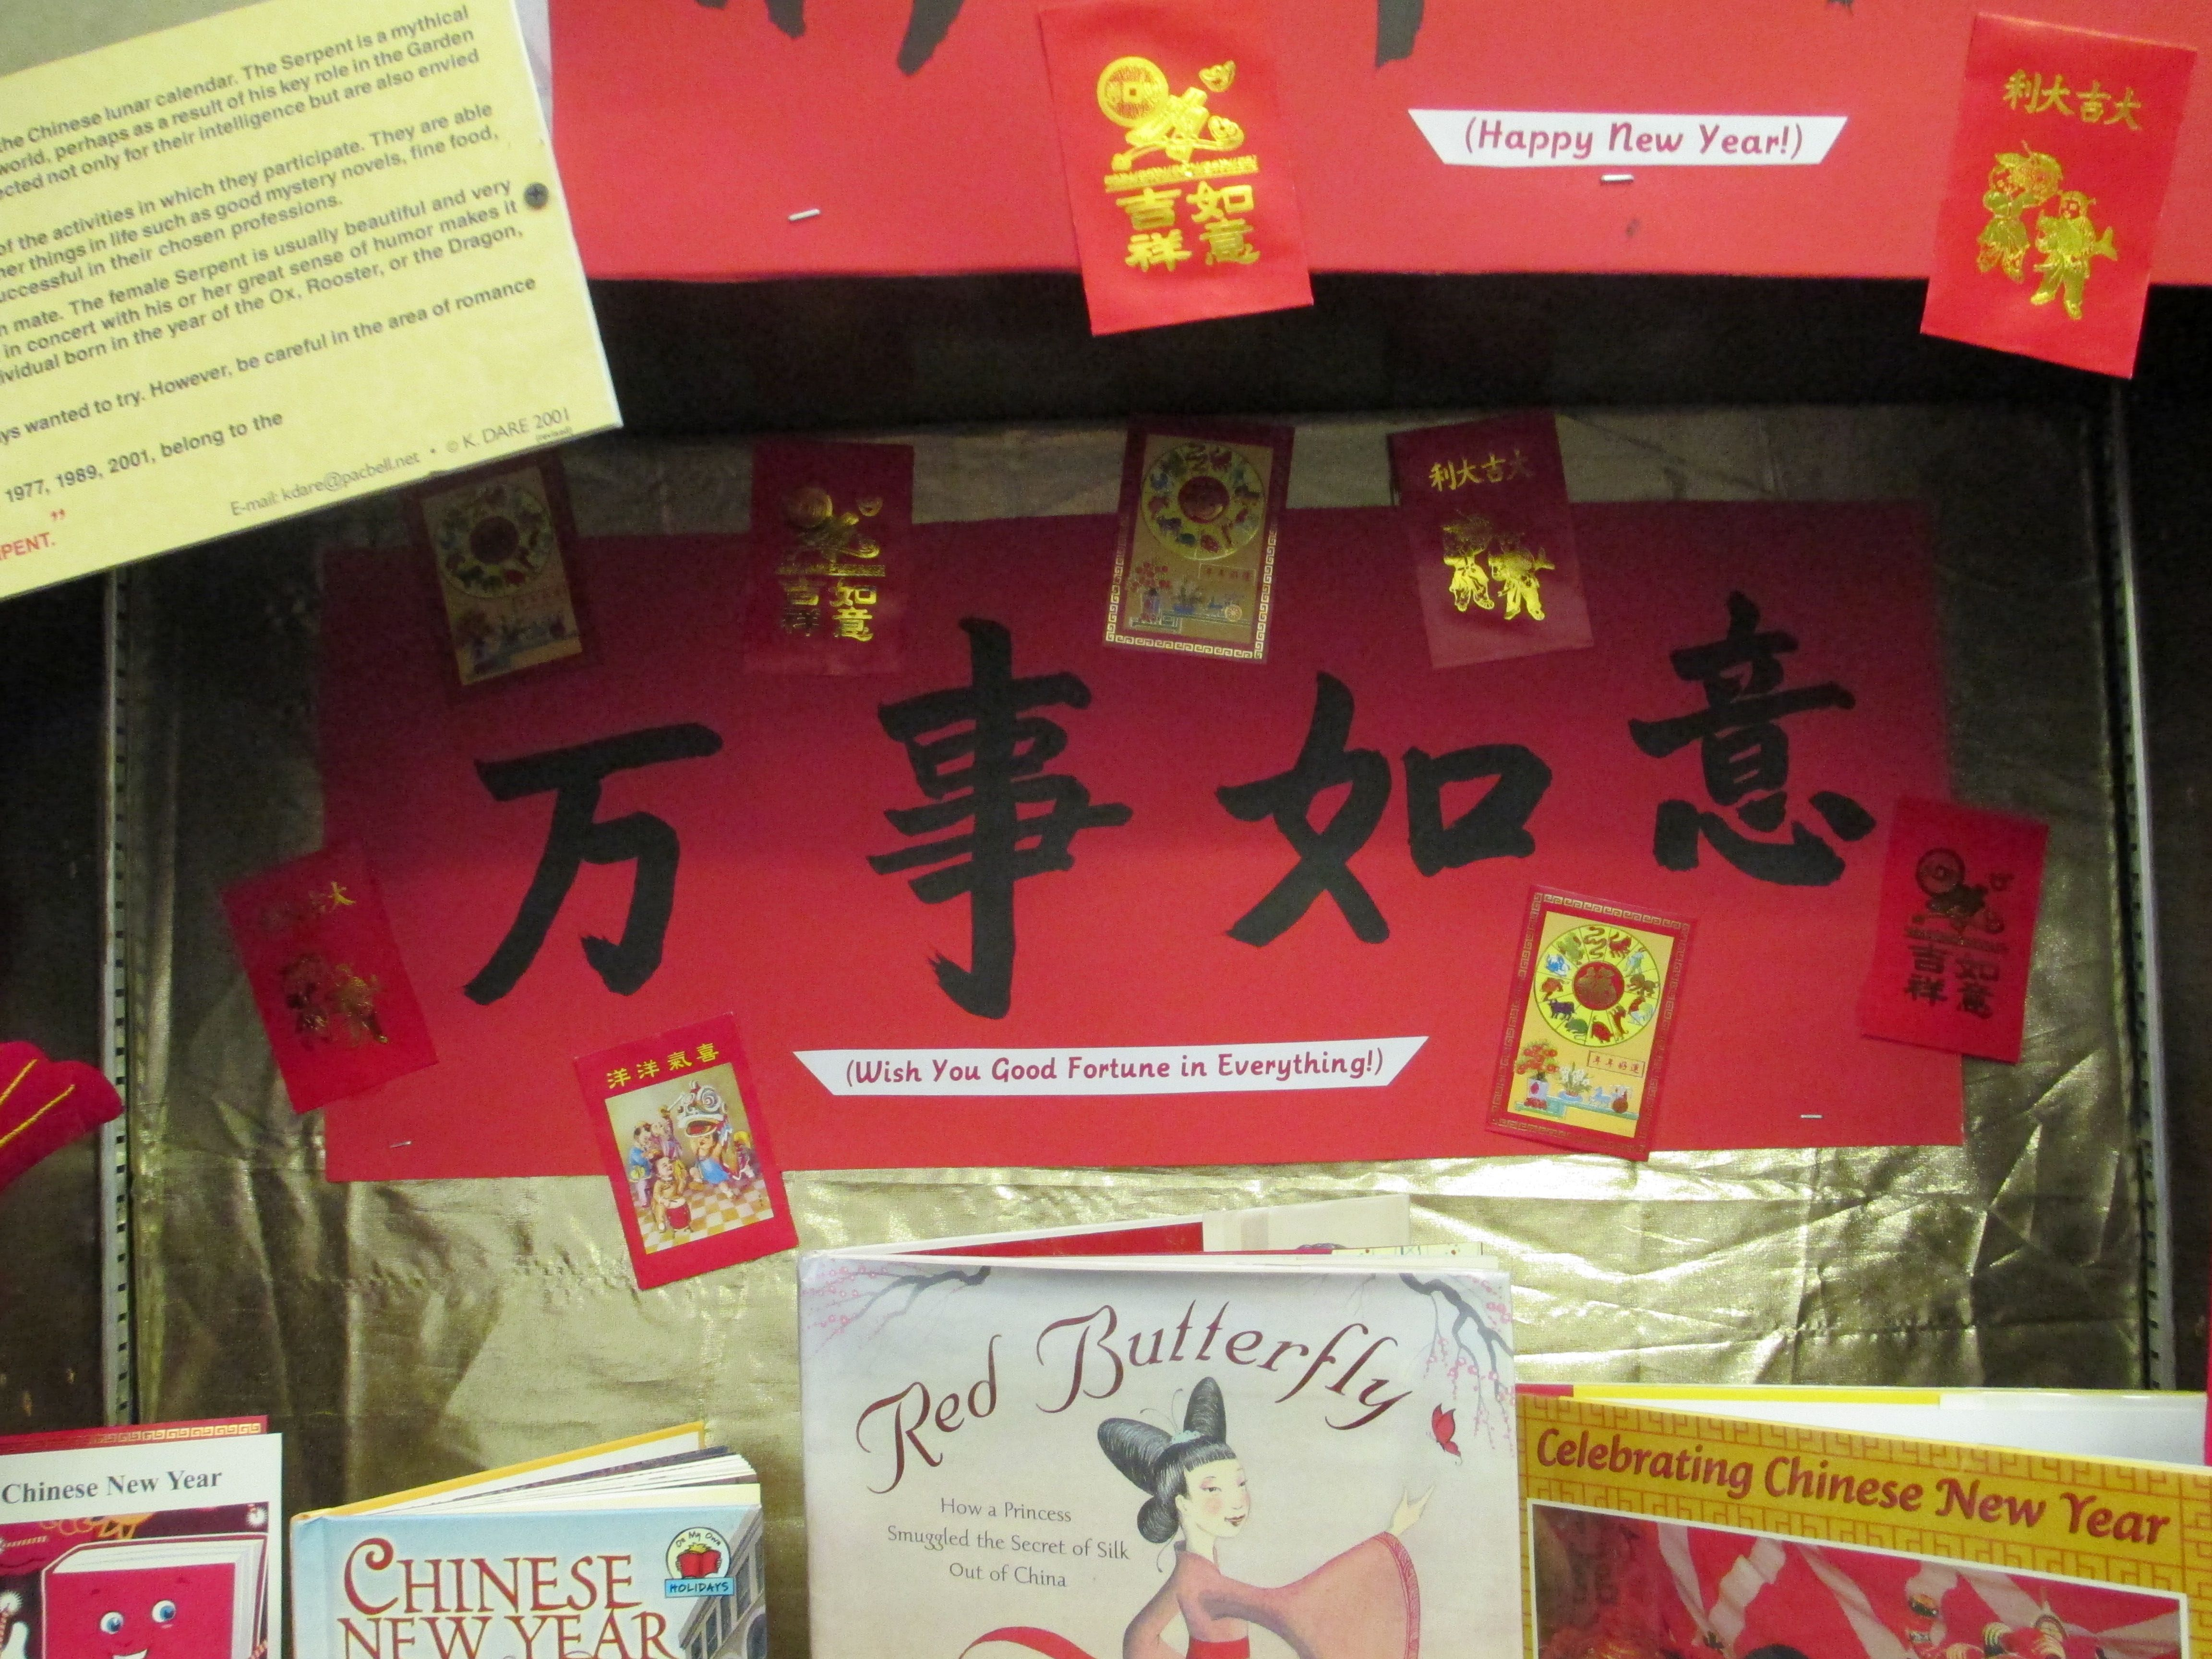 2013 chinese new year display at crozet library by pam grammer - Chinese New Year 1989